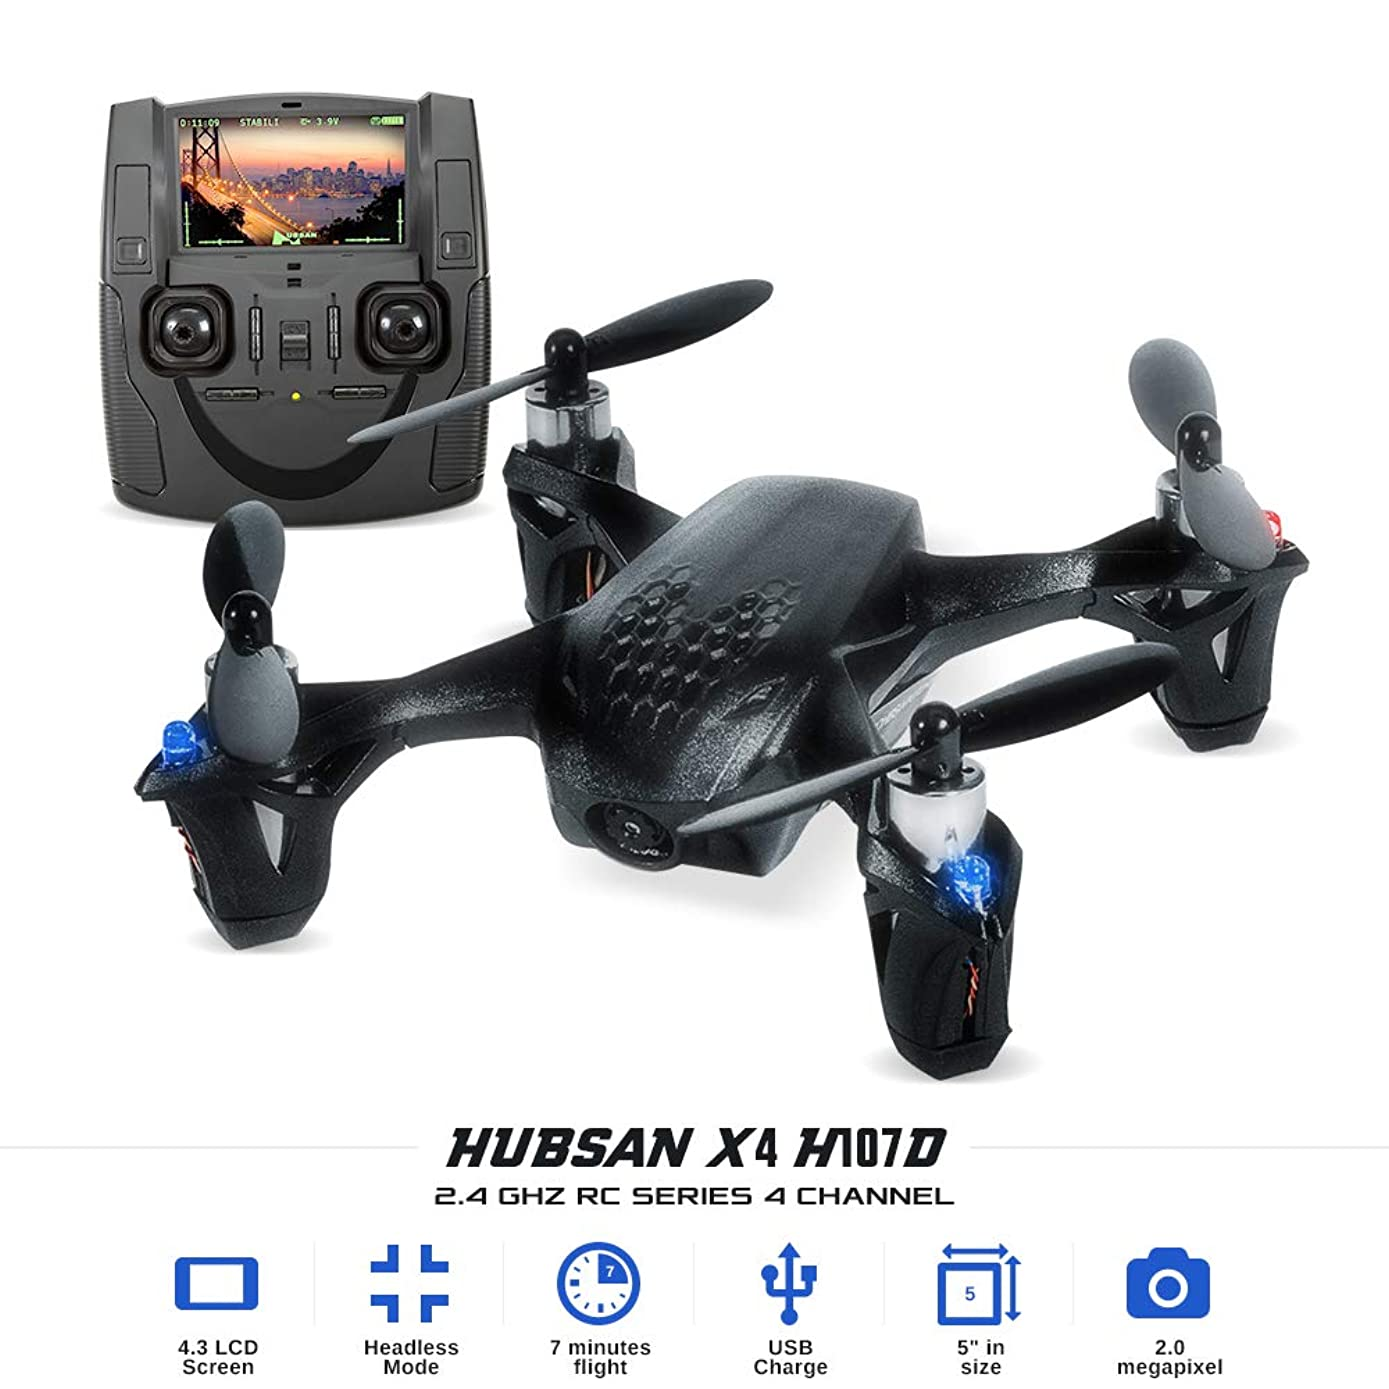 TEKSTRA HUBSAN X4 H107D Micro Quadcopter Drone for Kids & Adults, FPV HD 720P Camera Live Video, Altitude Hold, Headless Mode, Auto Take Off/Landing, Easy to Operate Beginners, Top Gifts for Teens.